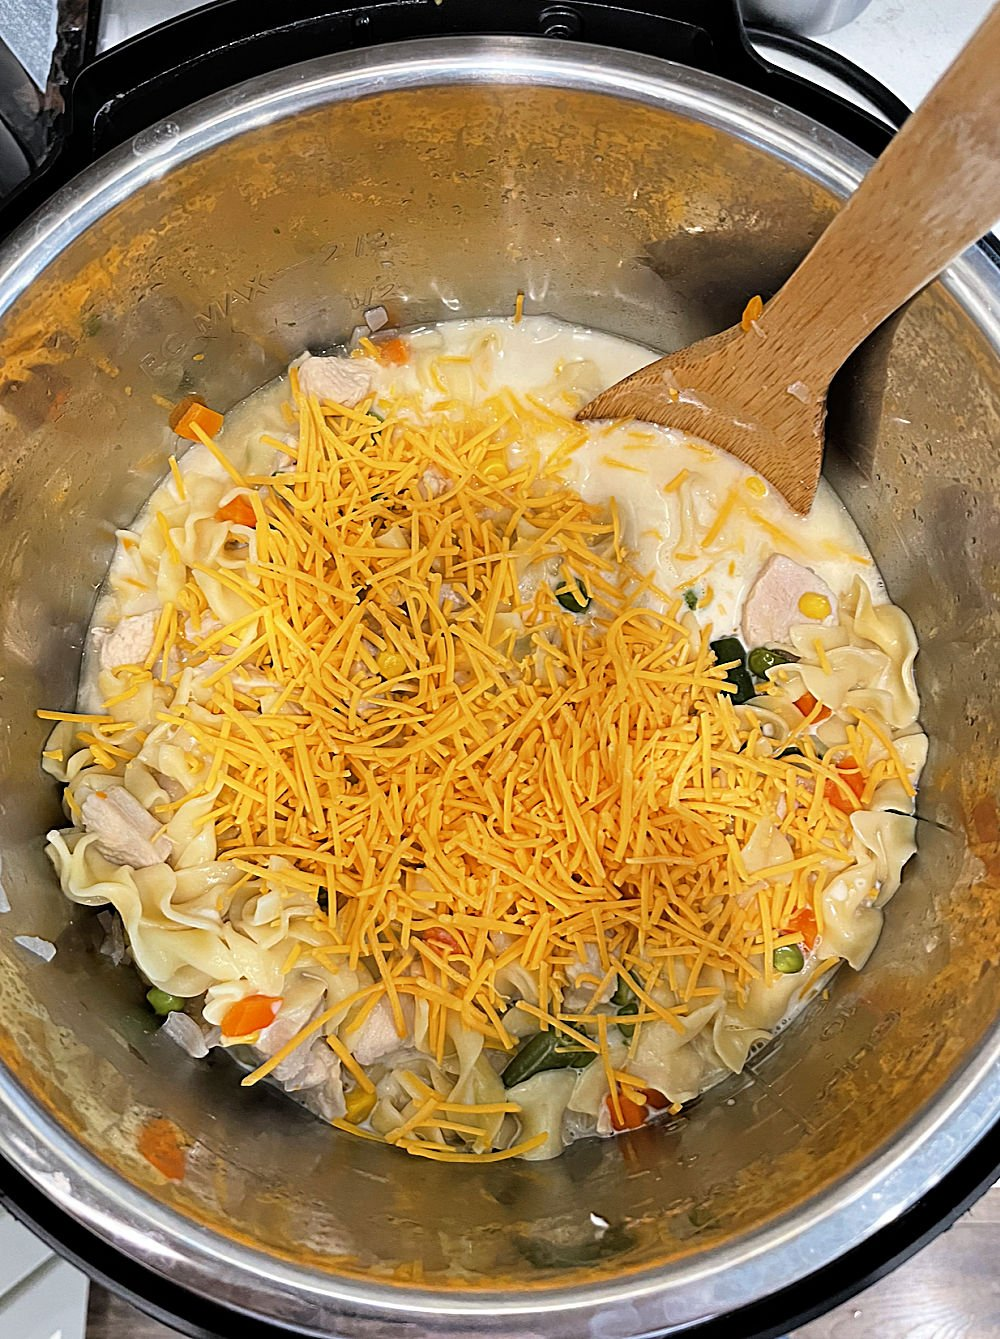 cheese mixed in with noodles and vegetables and chicken in pressure cooker